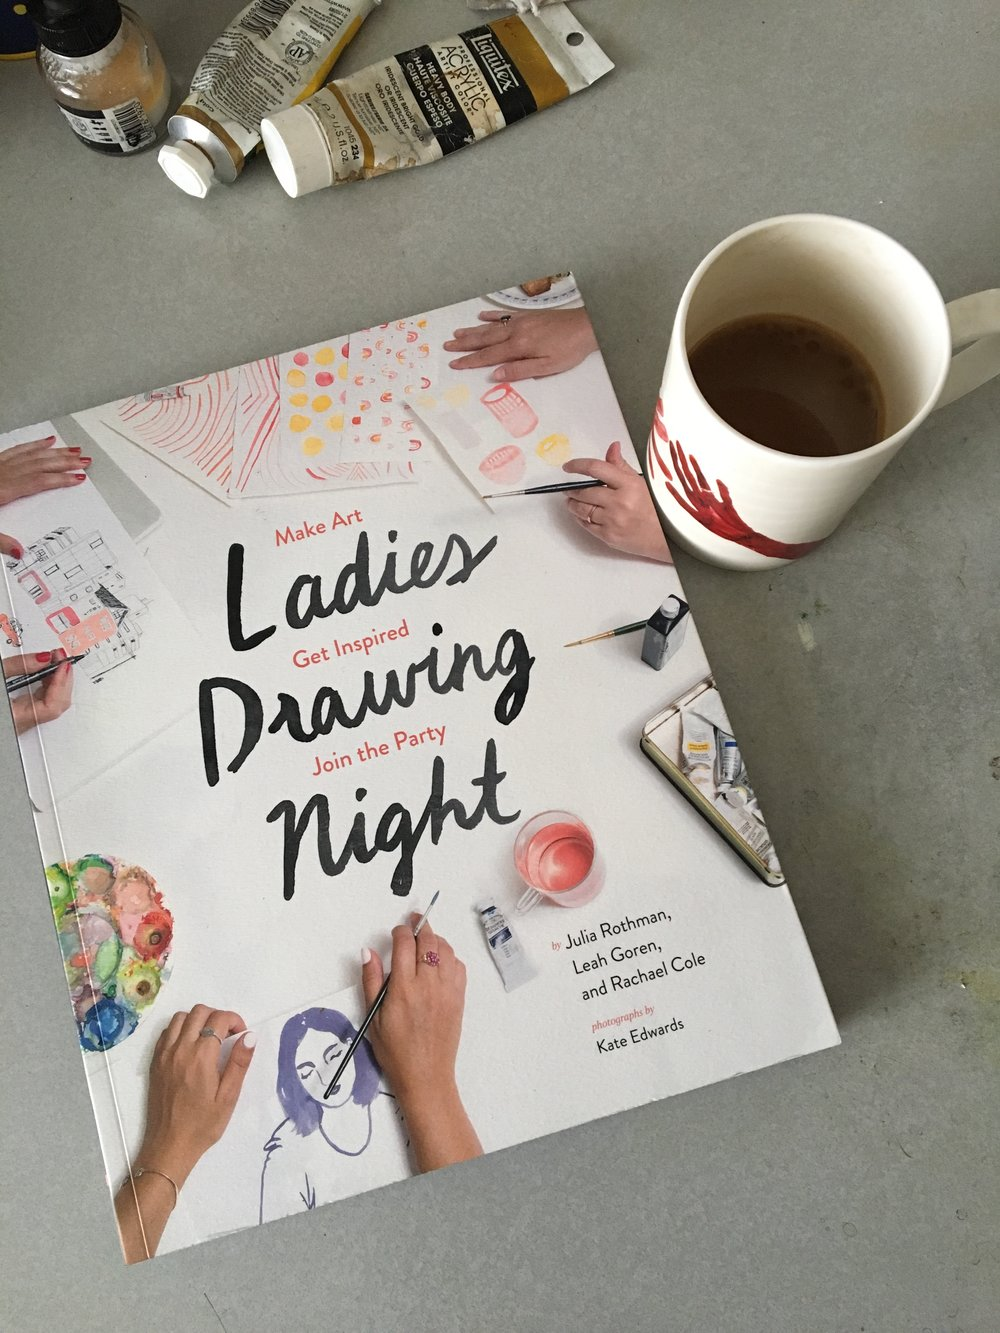 Ladies Drawing Night Book.JPG